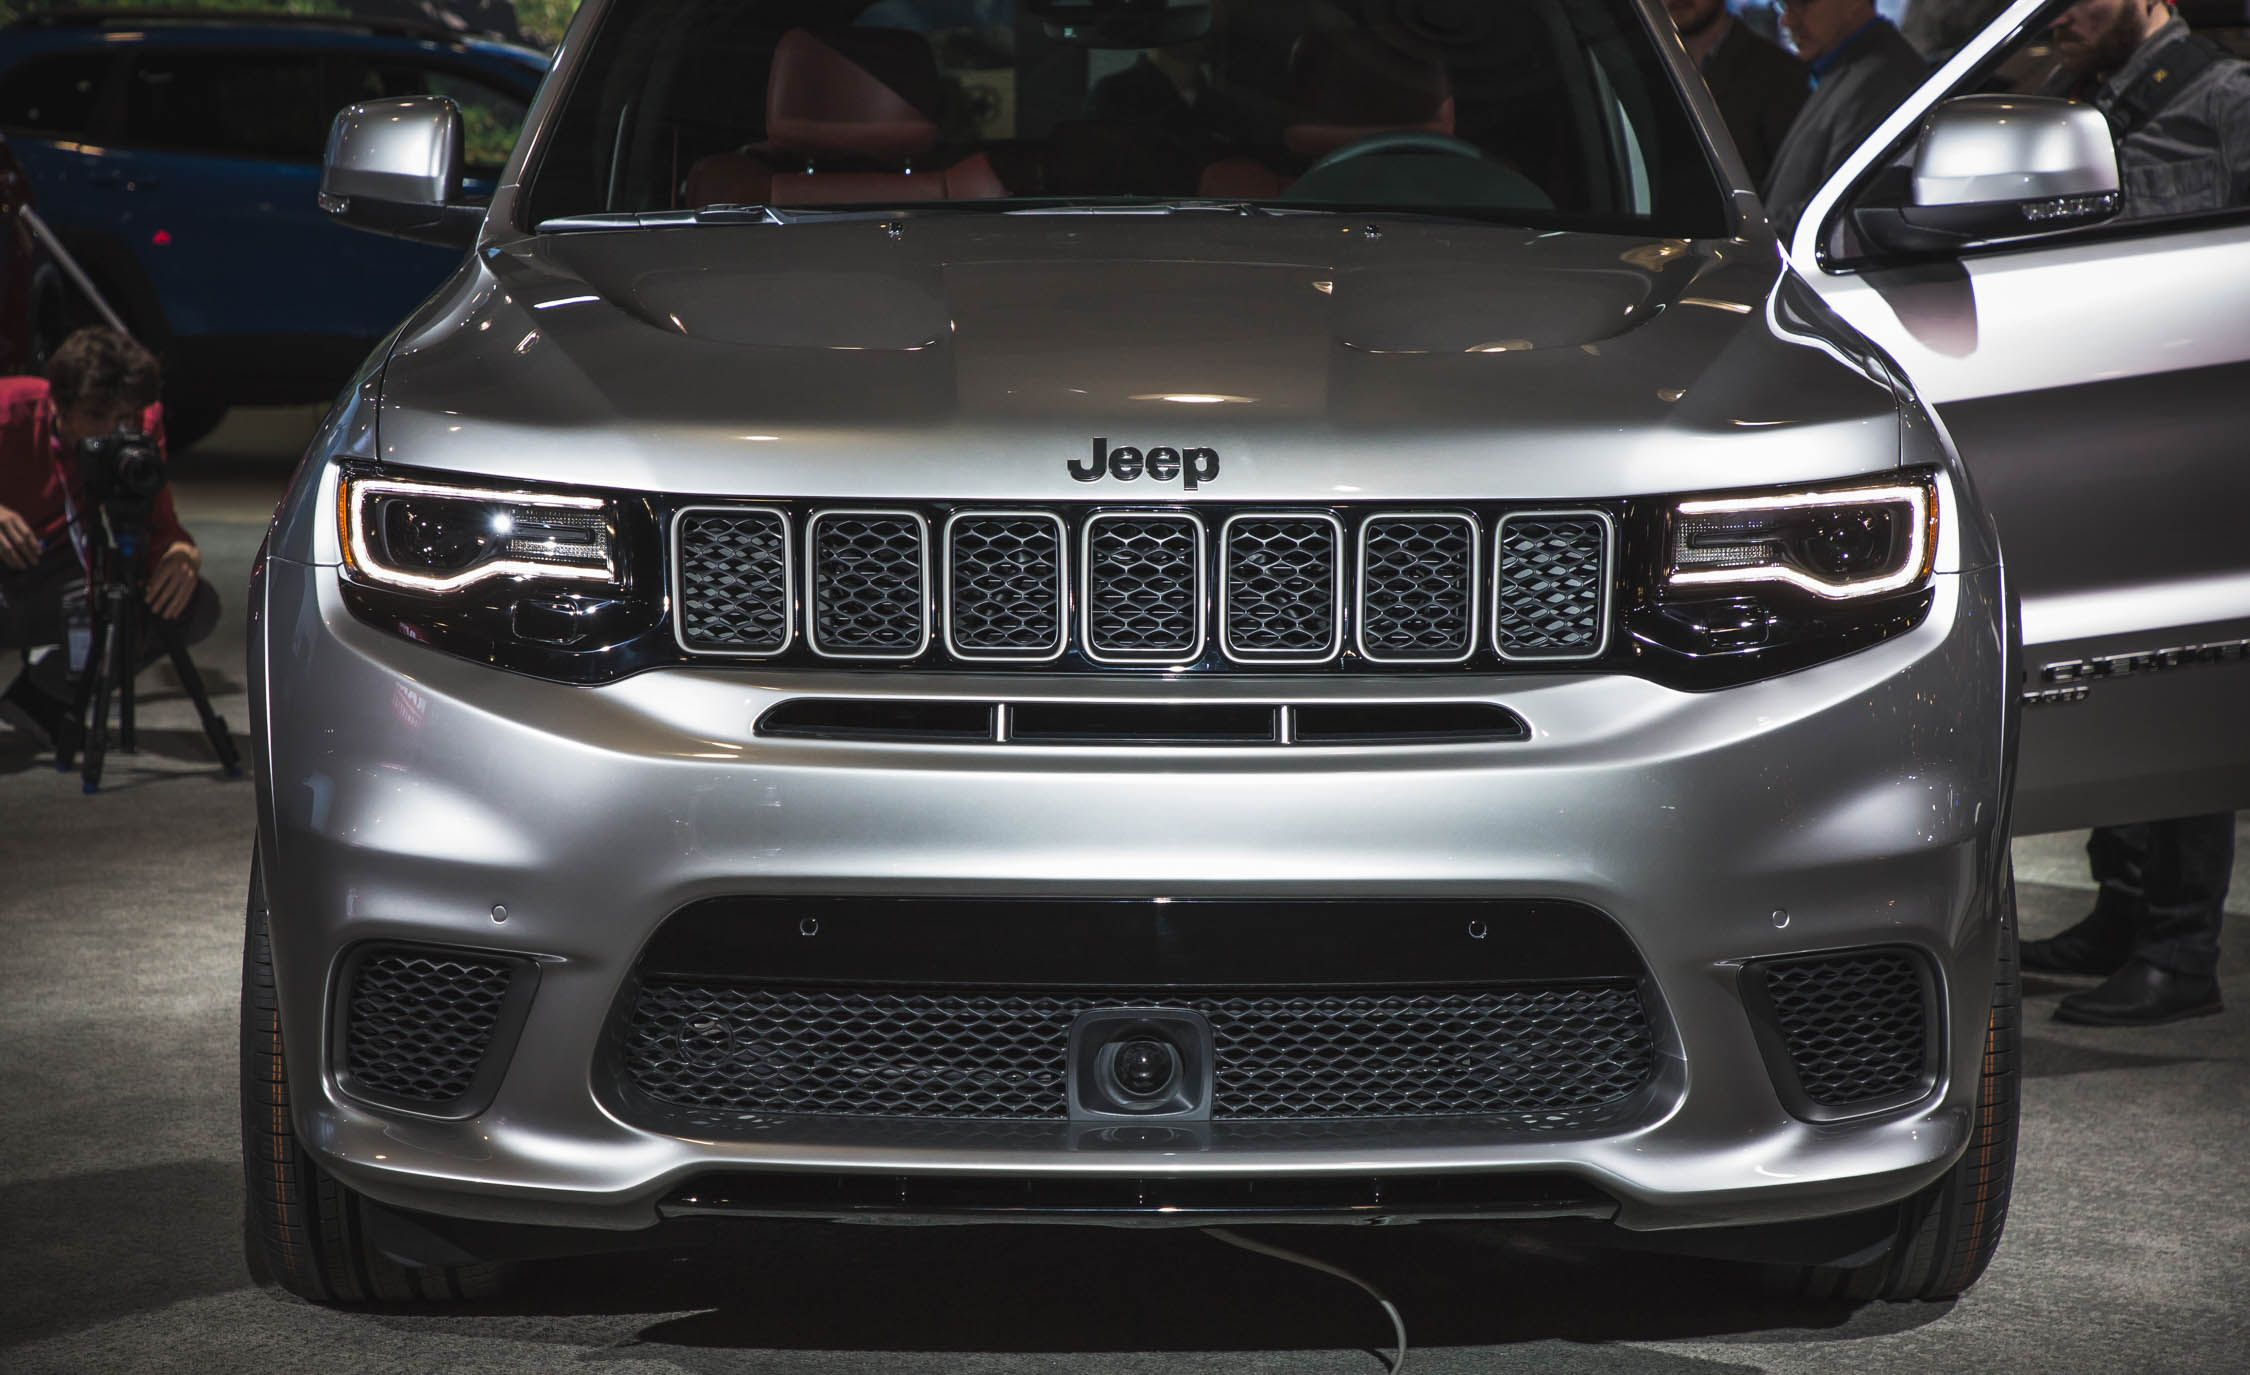 2018 Trackhawk Jeep >> 2018 Jeep Grand Cherokee Trackhawk Pictures Photo Gallery Car